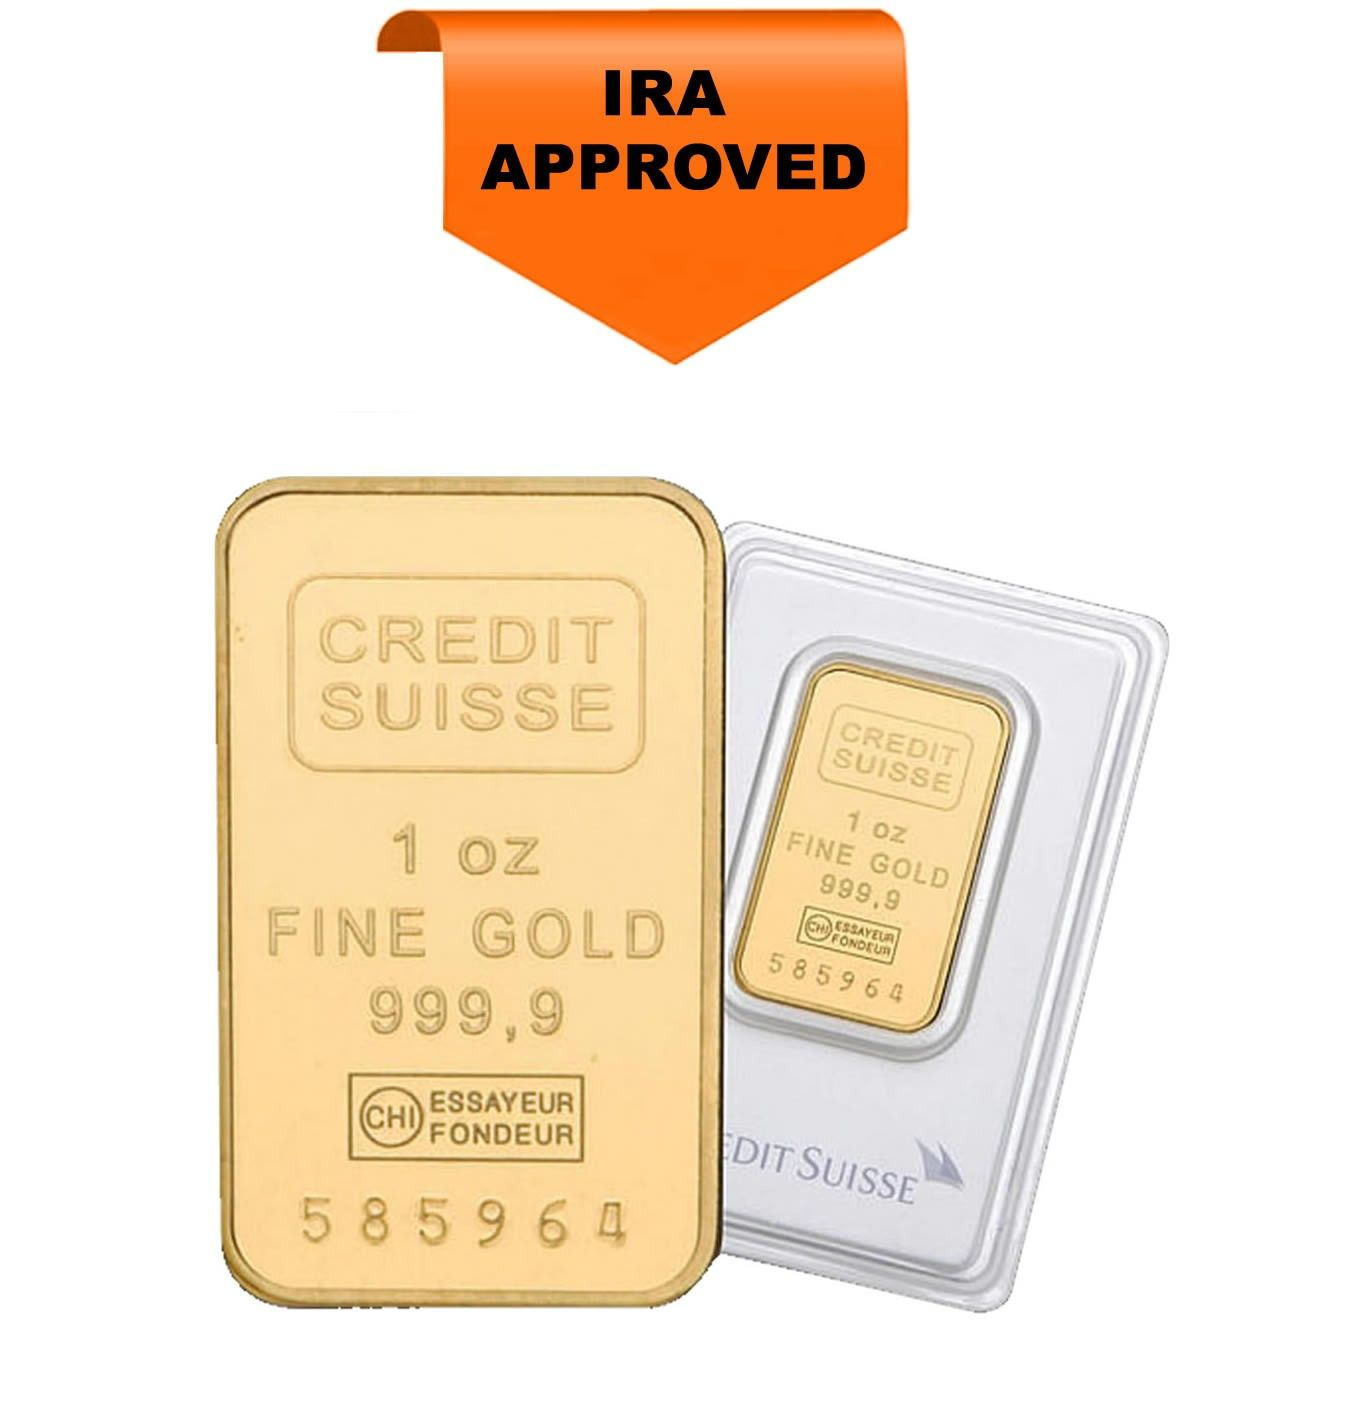 Credit Swiss 24 Karat 1 Oz Gold Bar Silver Bars Gold Silver Bullion